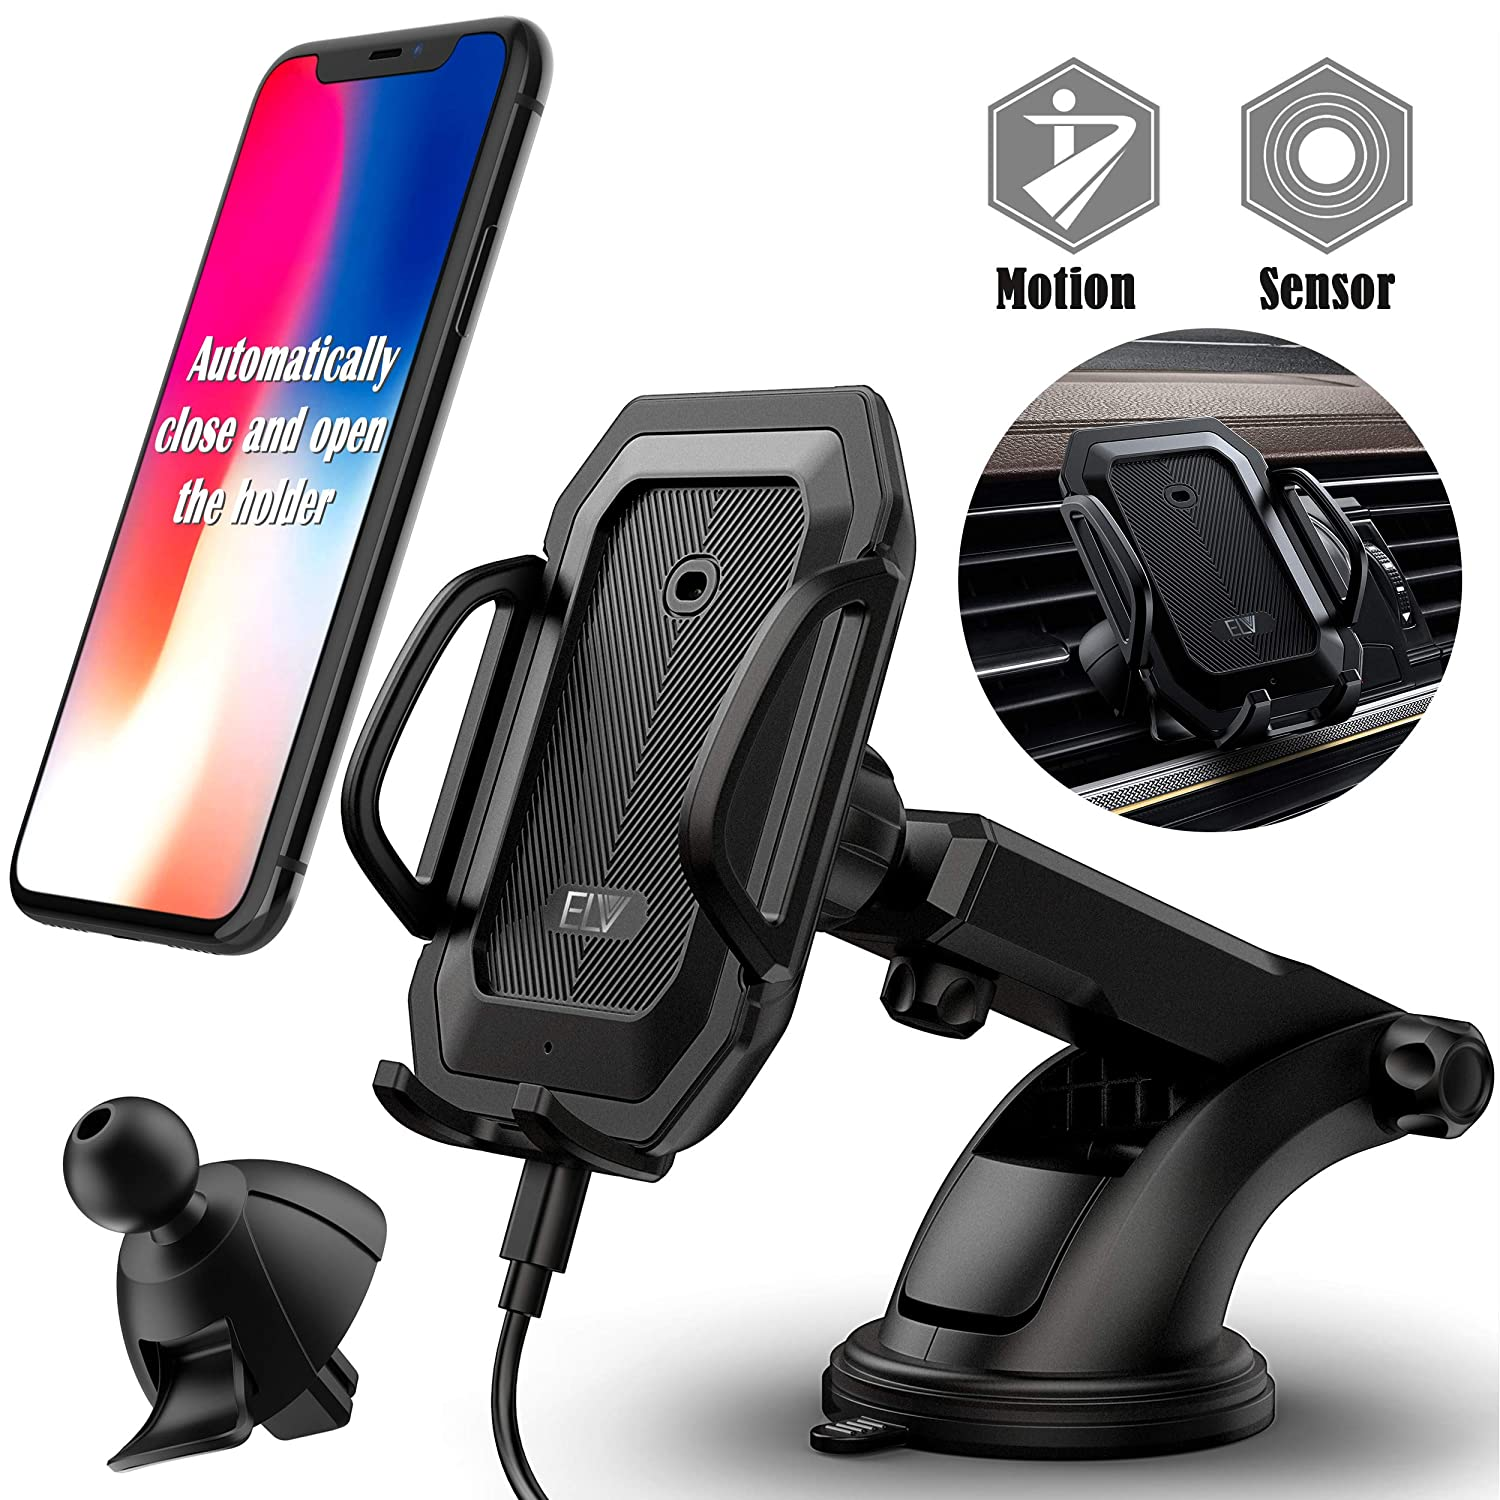 Car Phone Mount Samsung Galaxy Note 9 S9 S8 S7 /& GPS 4350469997 ELV Universal Car Air Vent Mount /& Dashboard Windshield Car Phone Holder Mount with Automatic Lock Release Cradle for iPhone X 8 7 Plus 6S